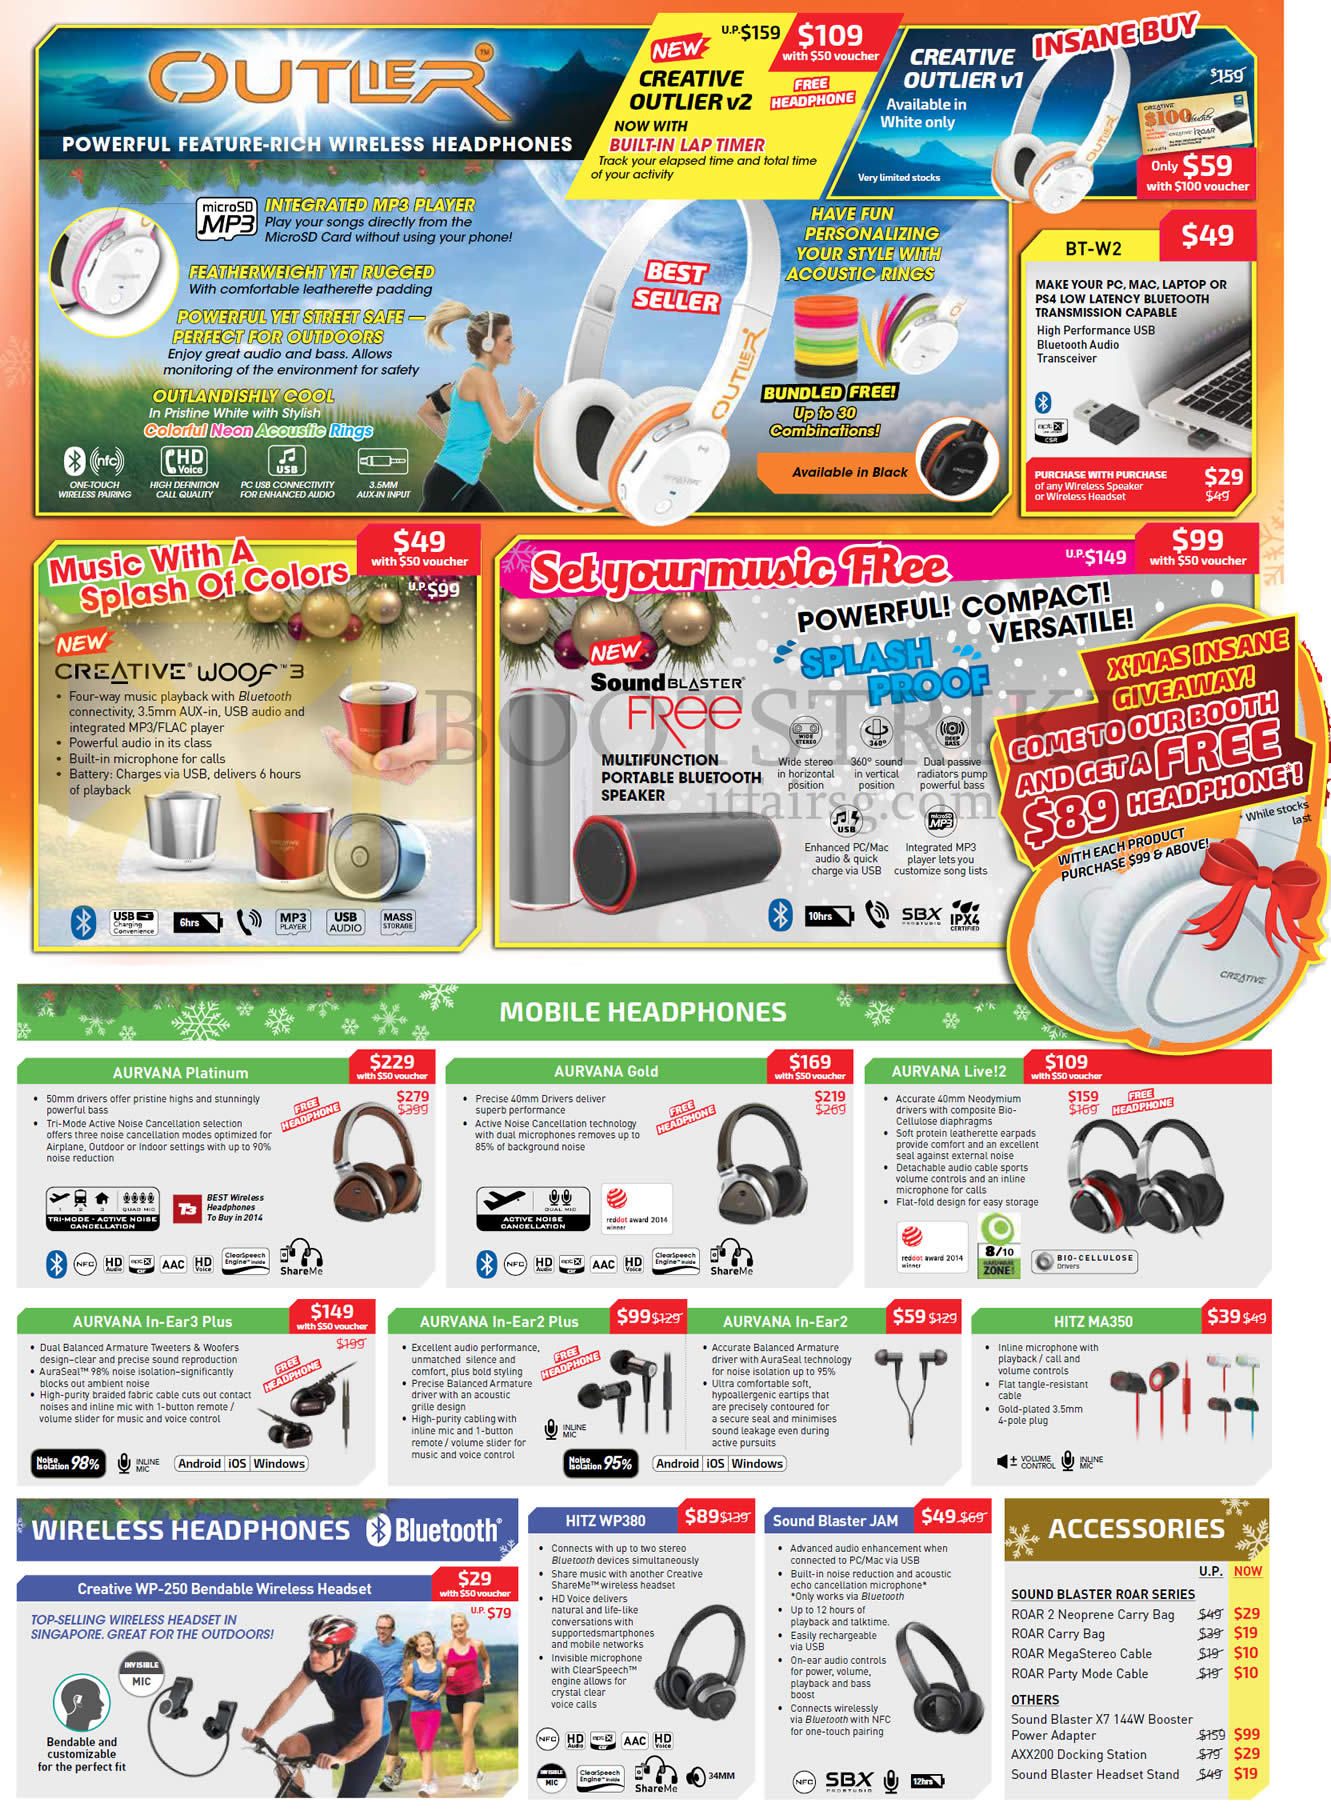 SITEX 2015 price list image brochure of Creative Headphones, Bluetooth Speakers, Accessories, Outlier V1, Woof 3, Sound Blaster Free, Aurvana Platinum, Gold, Live 2, In Ear 3 Plus, Hitz MA350